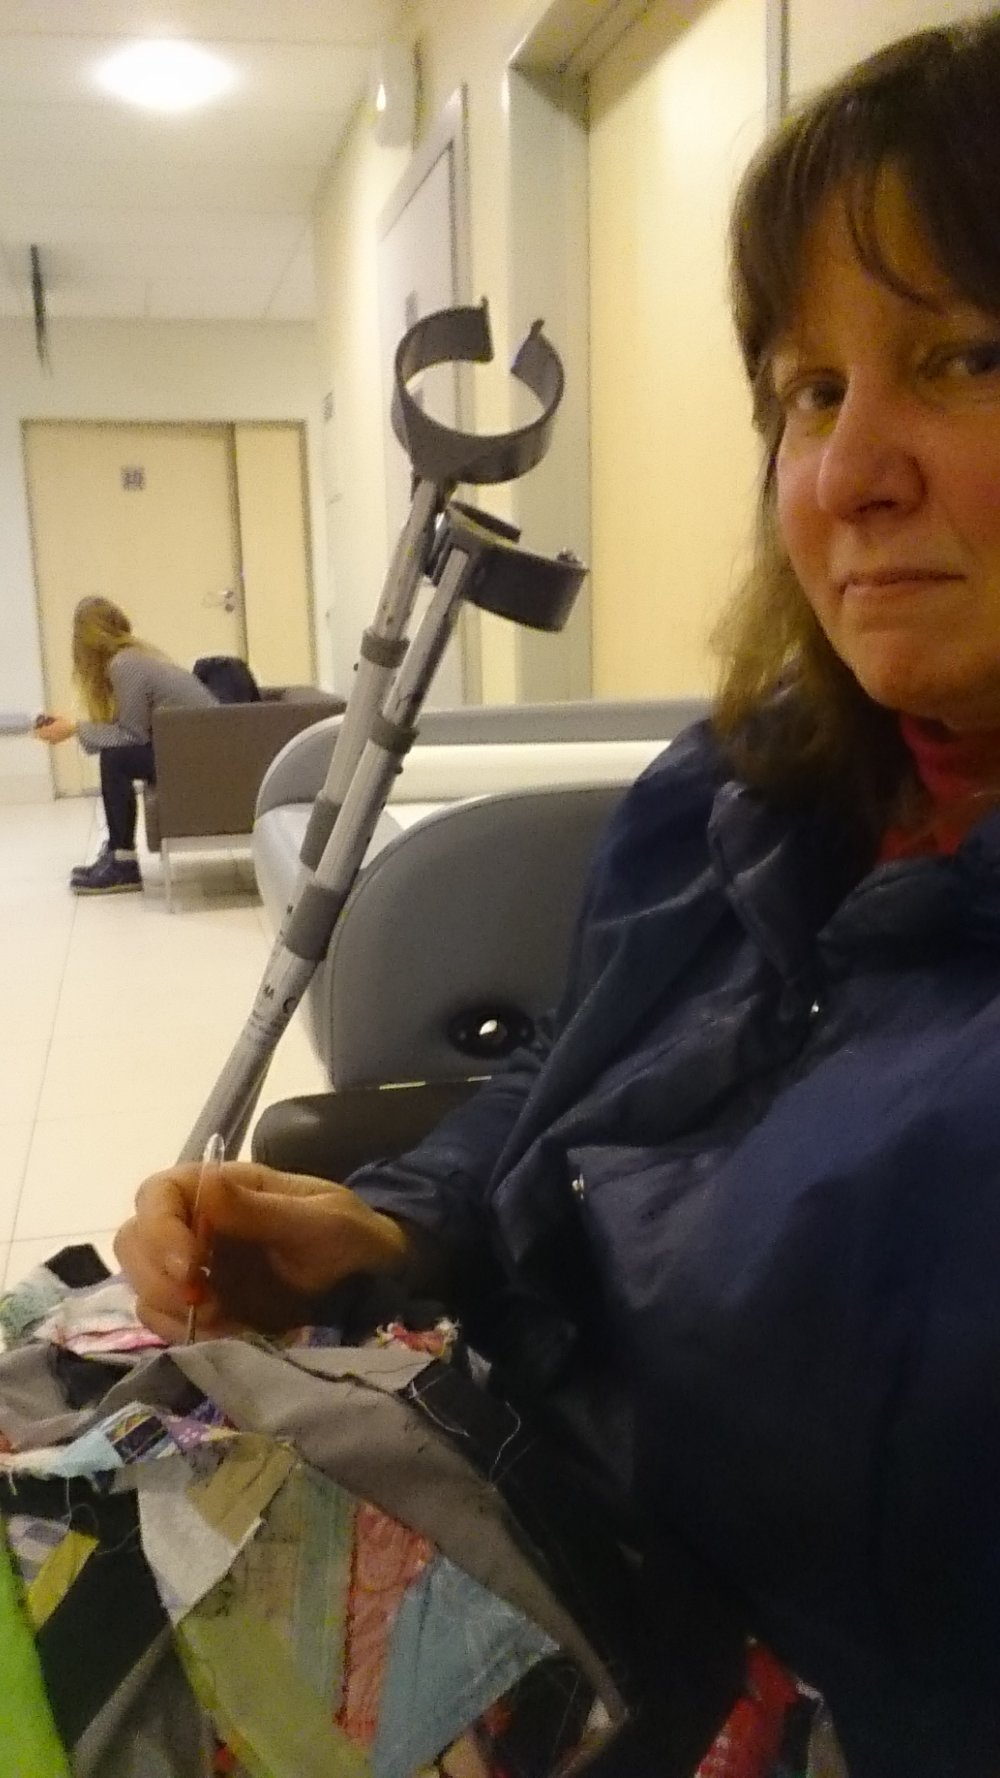 This may be the first selfie I've ever taken.  It was hard to do it with one hand holding the seam ripper and one hand on the camera.  Guess I'll need more experience.  This is while I was waiting for Mike to get an x ray. He was waiting over close to the x ray room.  He was sitting in the wheelchair so he would be first in line at the door.